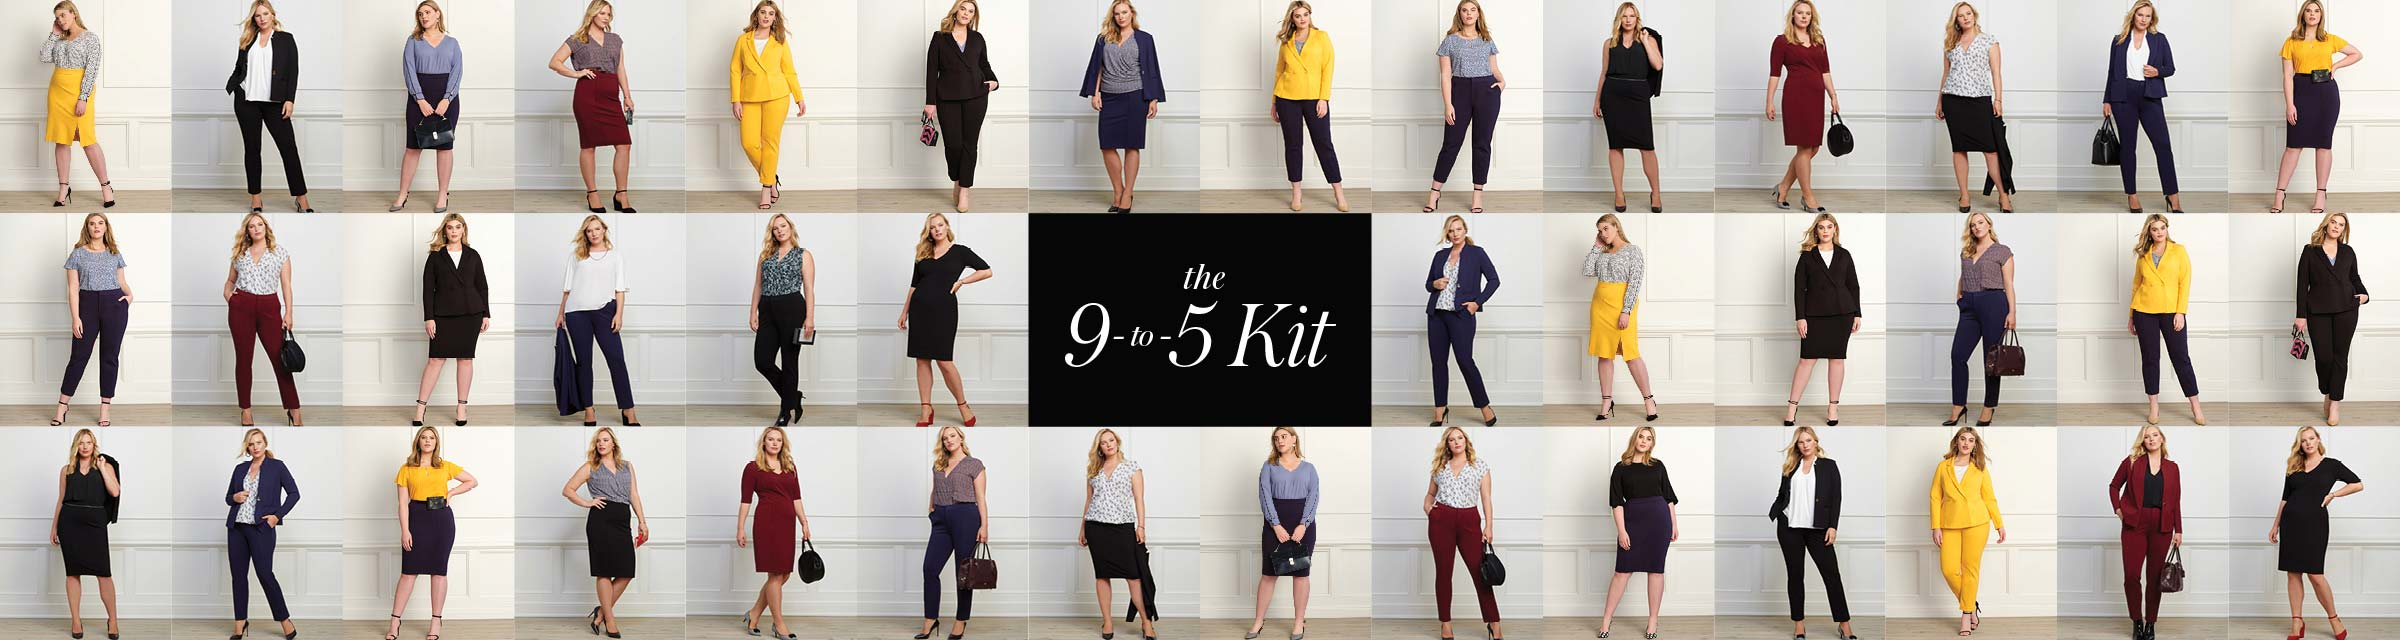 The 9 to 5 Kit